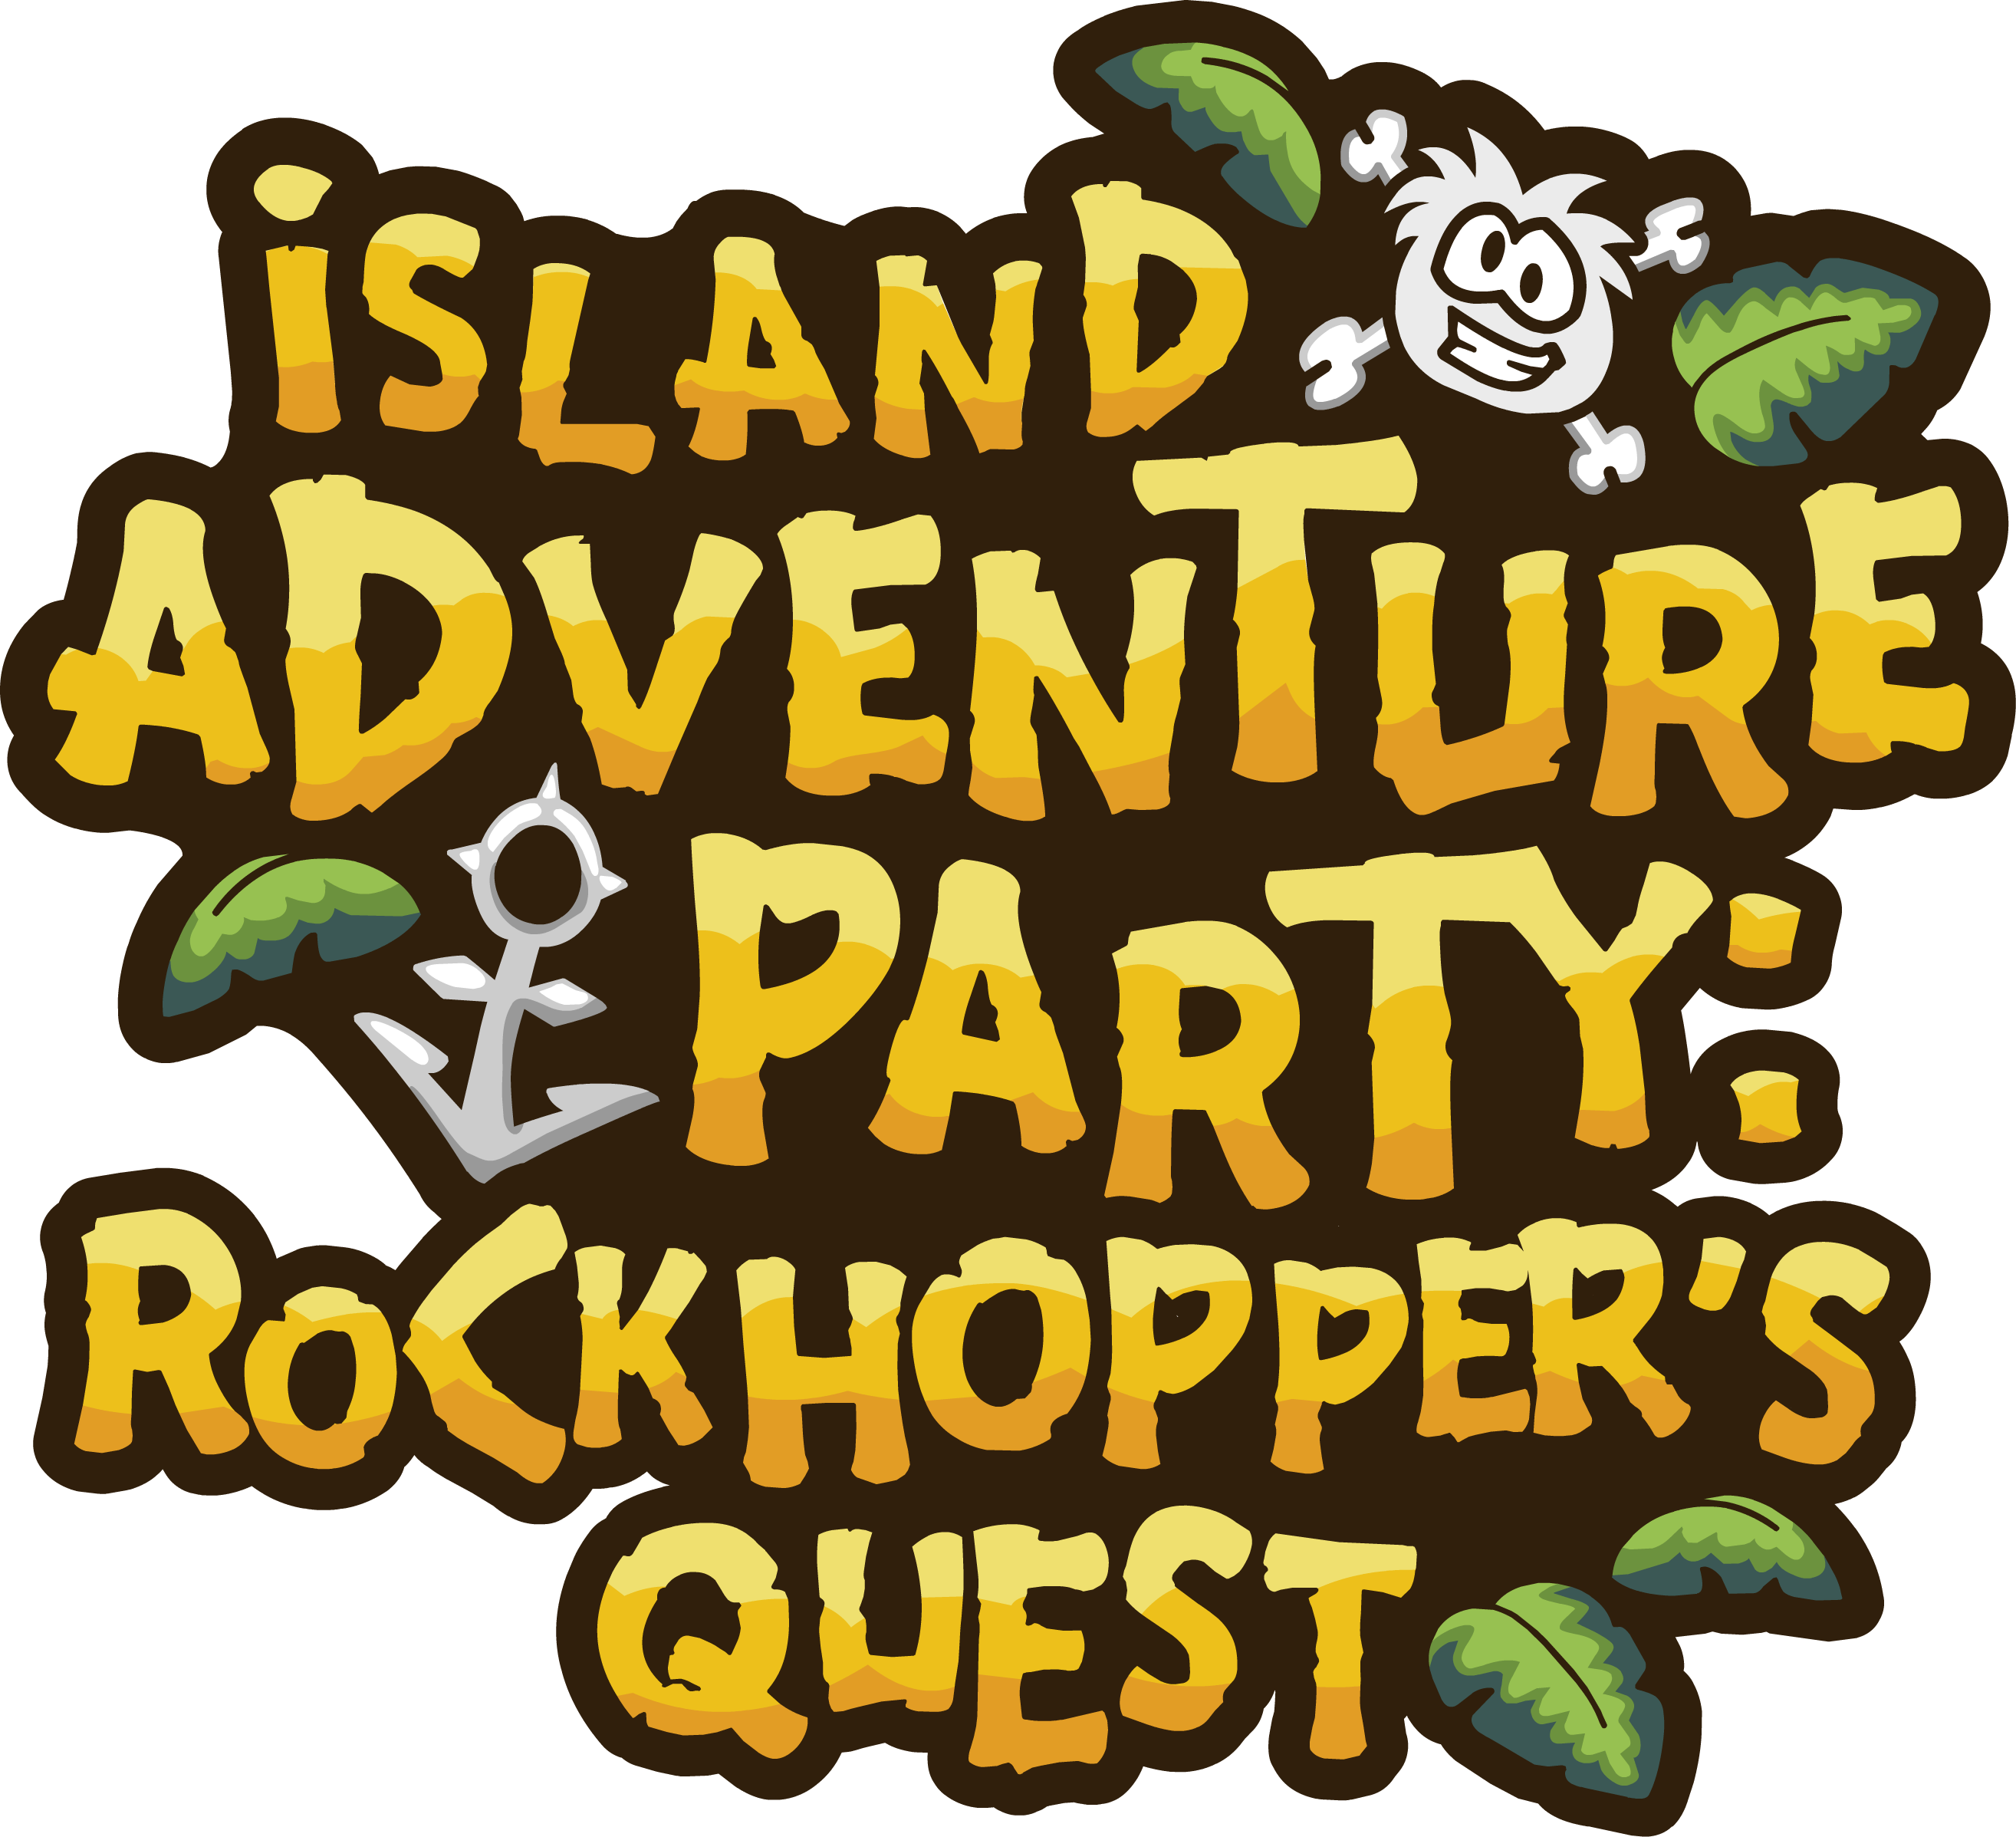 Island Adventure Party: Rockhopper's Quest